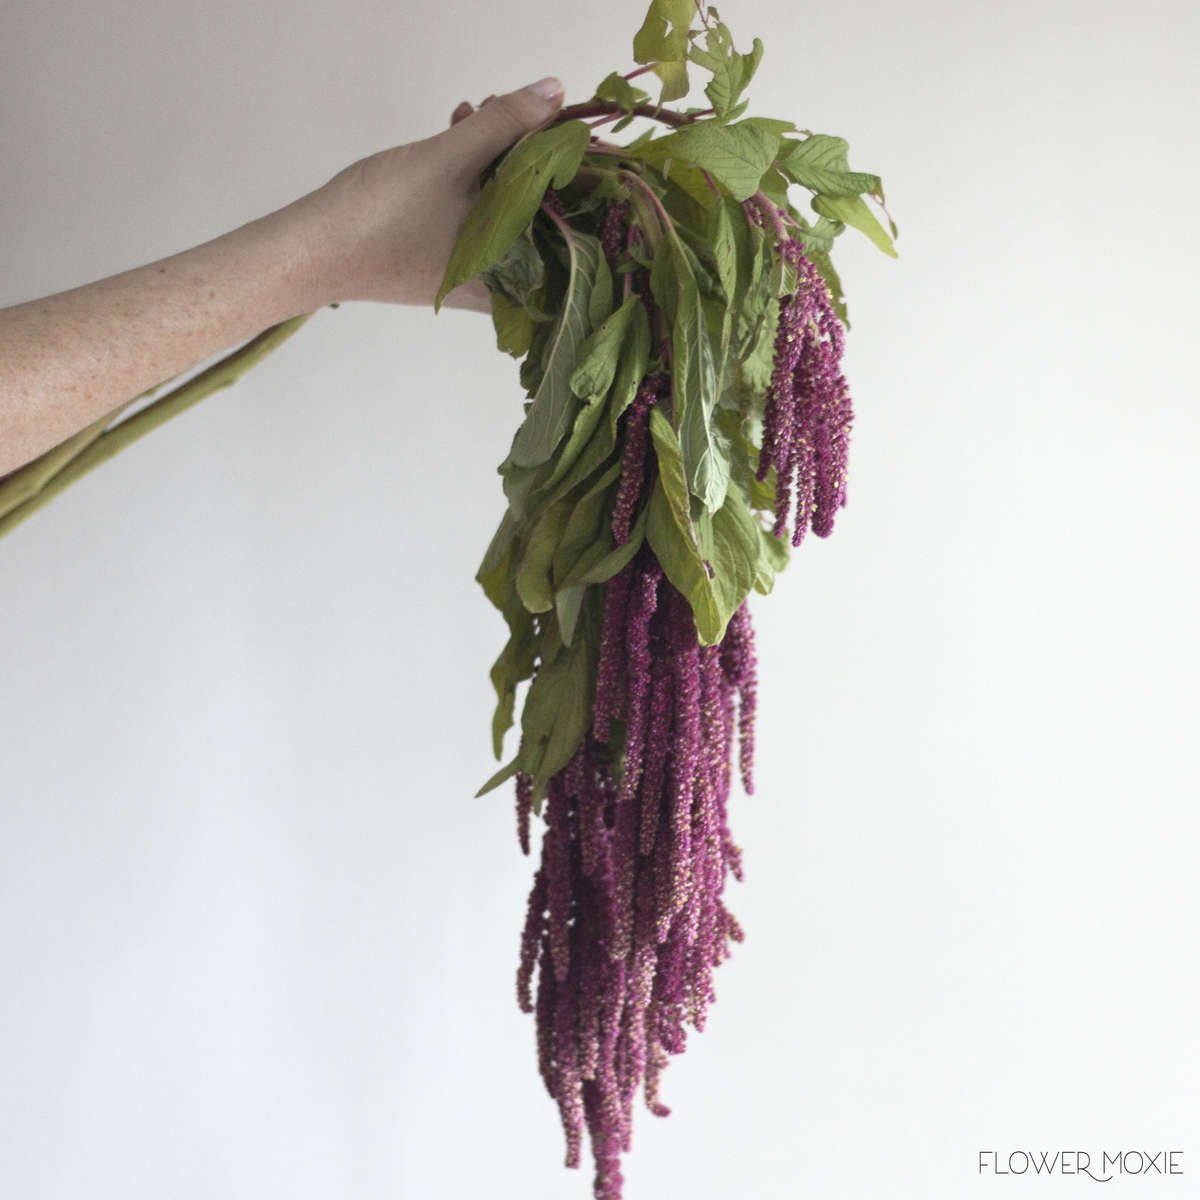 Hanging amaranthus, amaranthus hanging, burgundy wedding palette, fall wedding colors, diy bride, diy flowers, diy bouquet, diy wedding, diy wedding ideas, flower moxie, what does a bikini rose look like, wedding ideas, make your own bouquet, make your own wedding bouquet, flower moxie